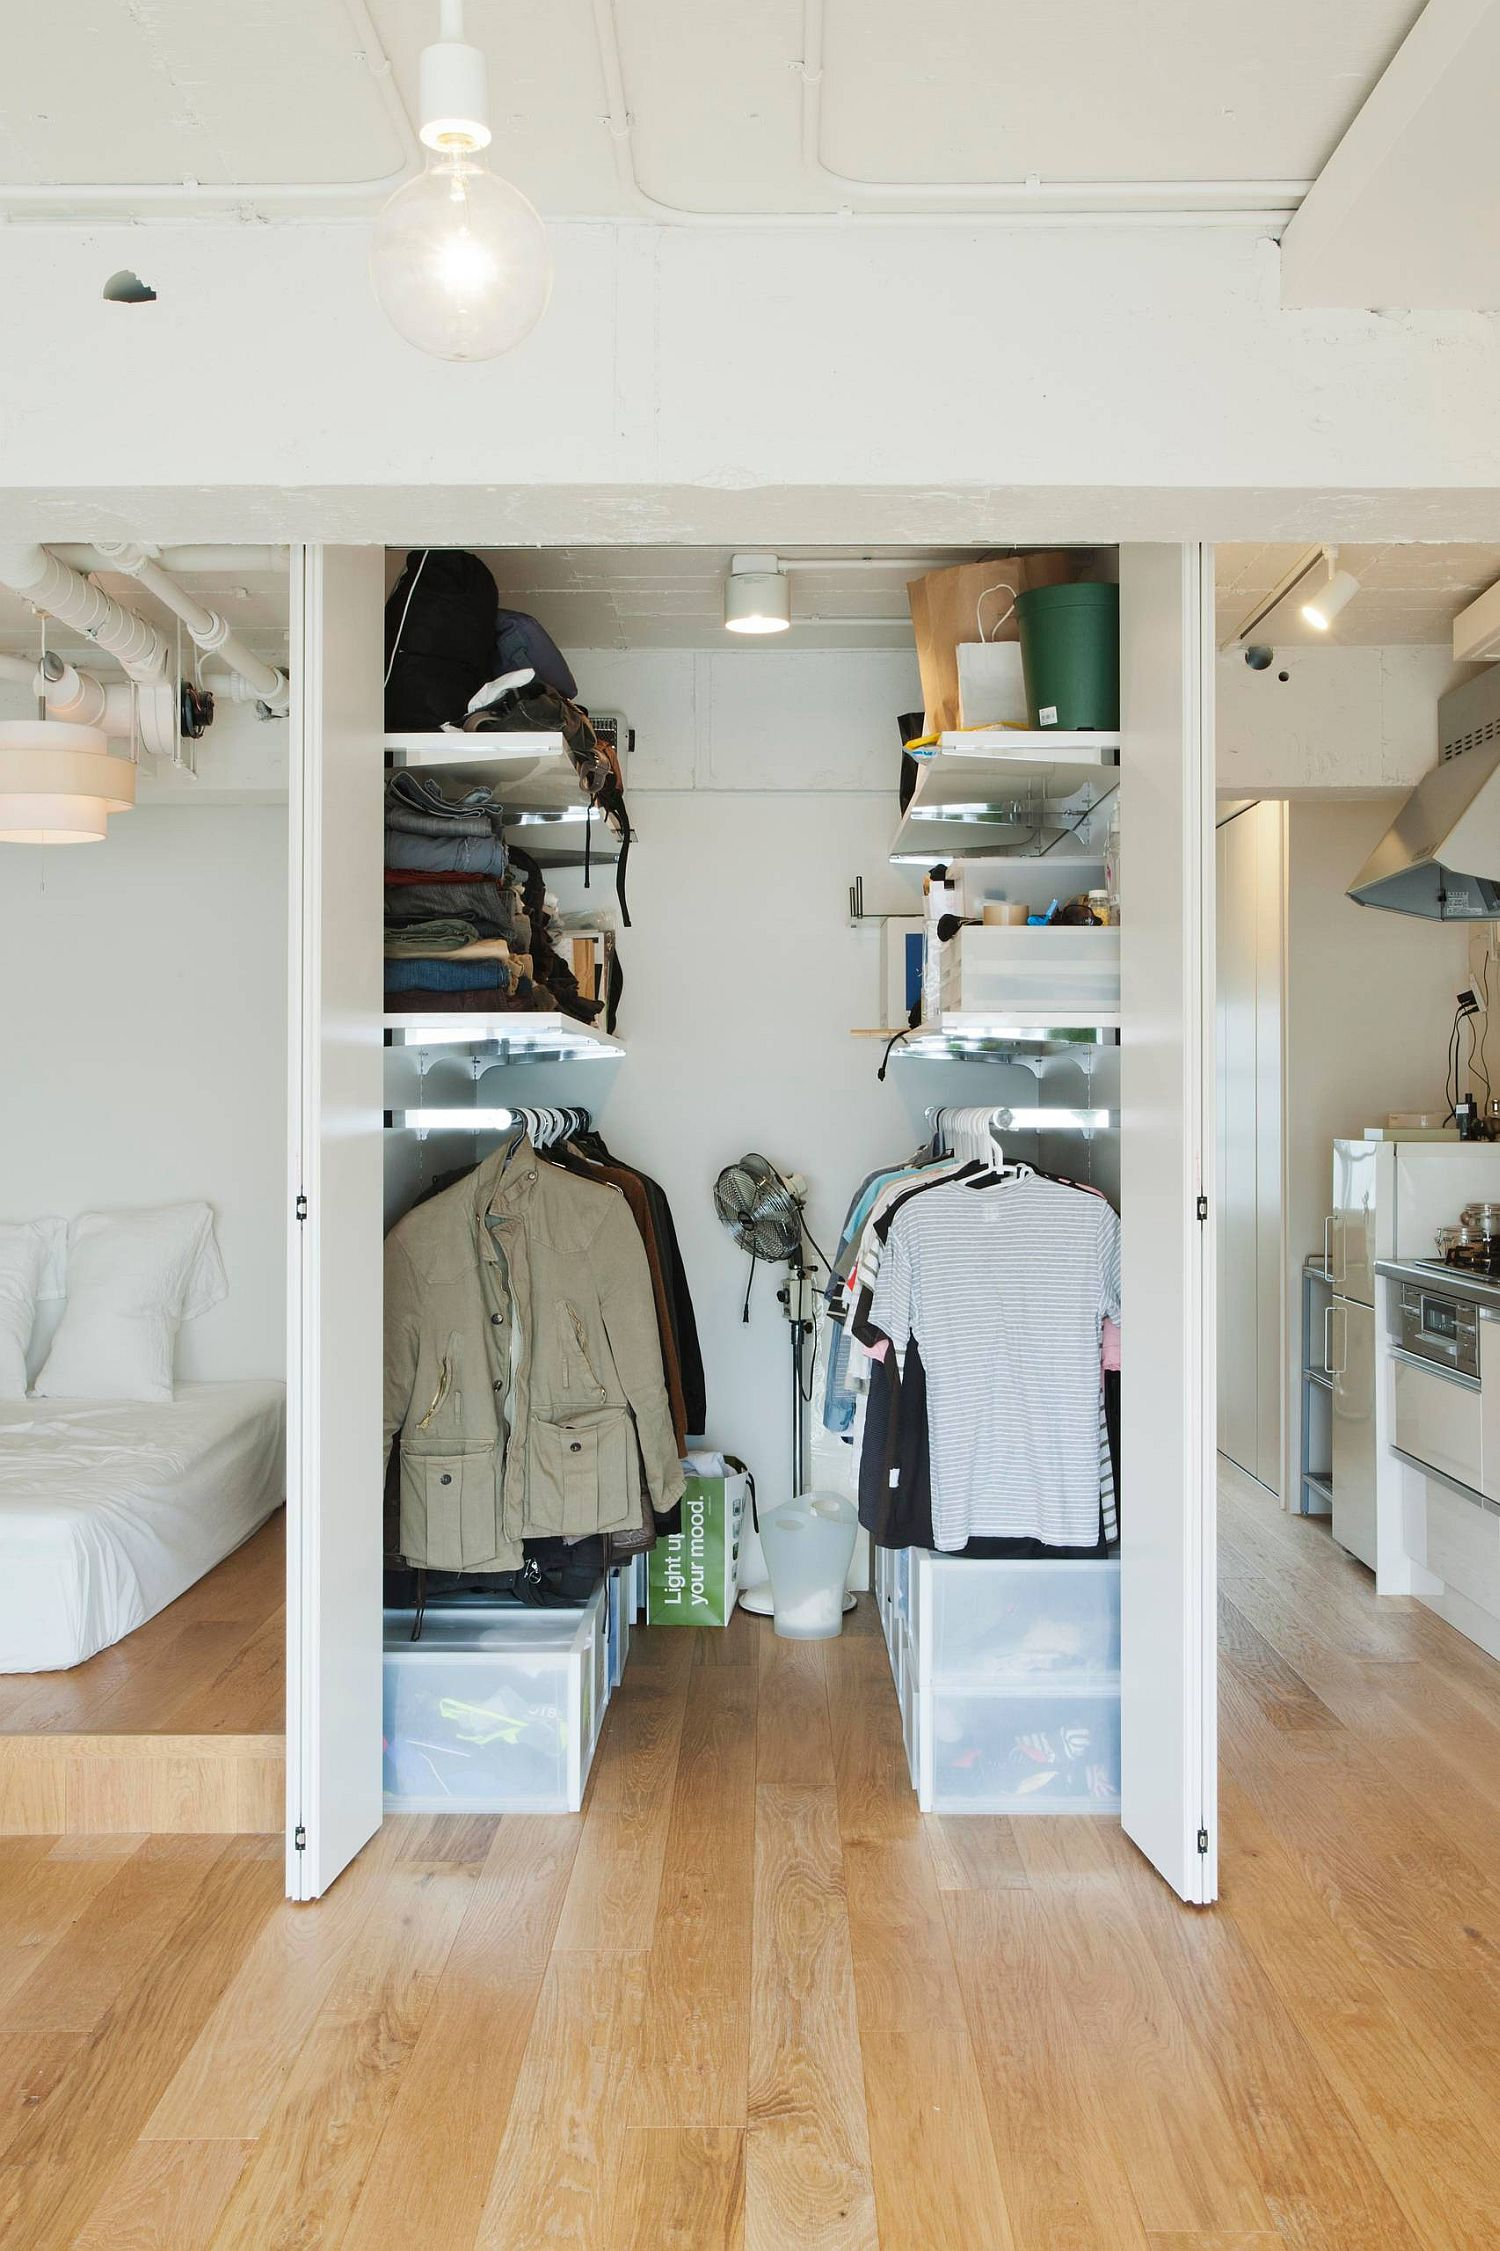 Even the tiniest space next to the bedroom can be turned into a closet